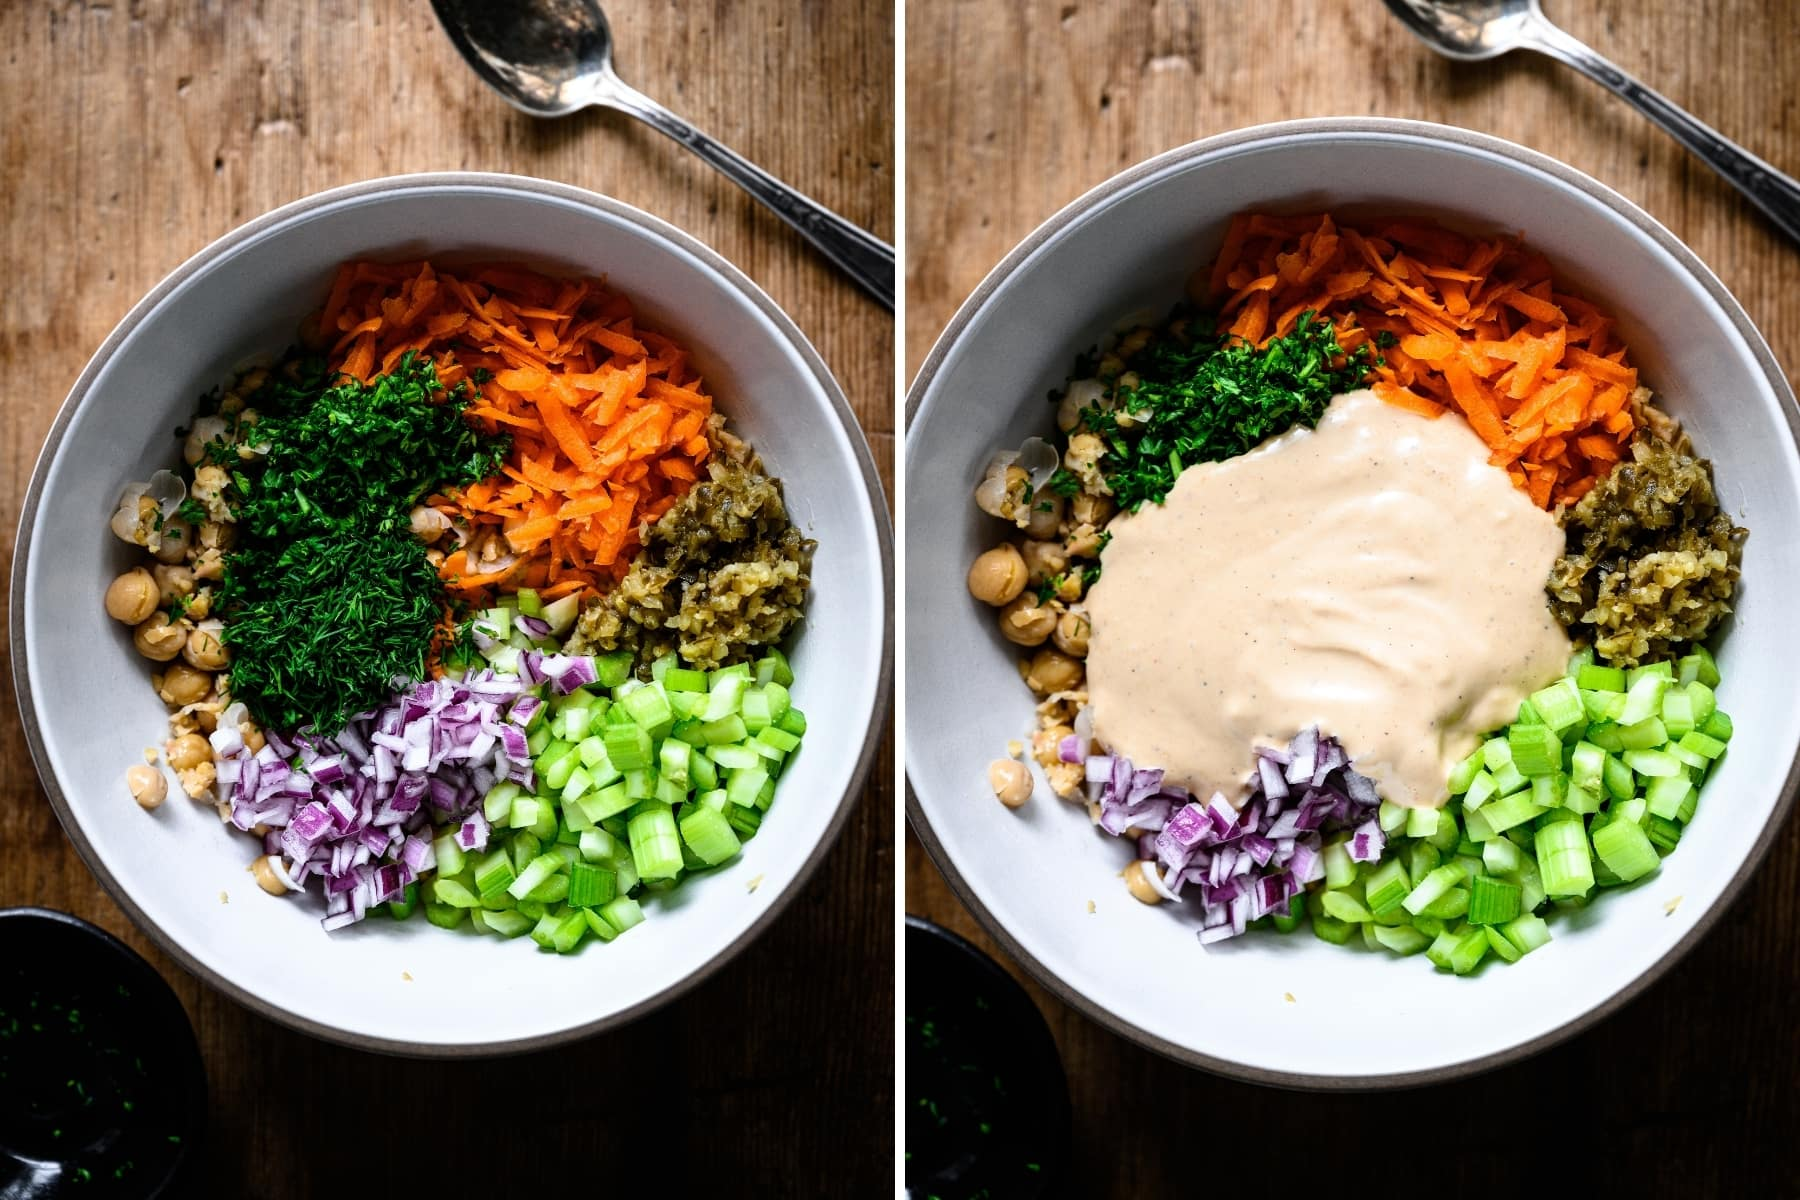 ingredients for vegan chickpea tuna salad in a large bowl before mixing together.